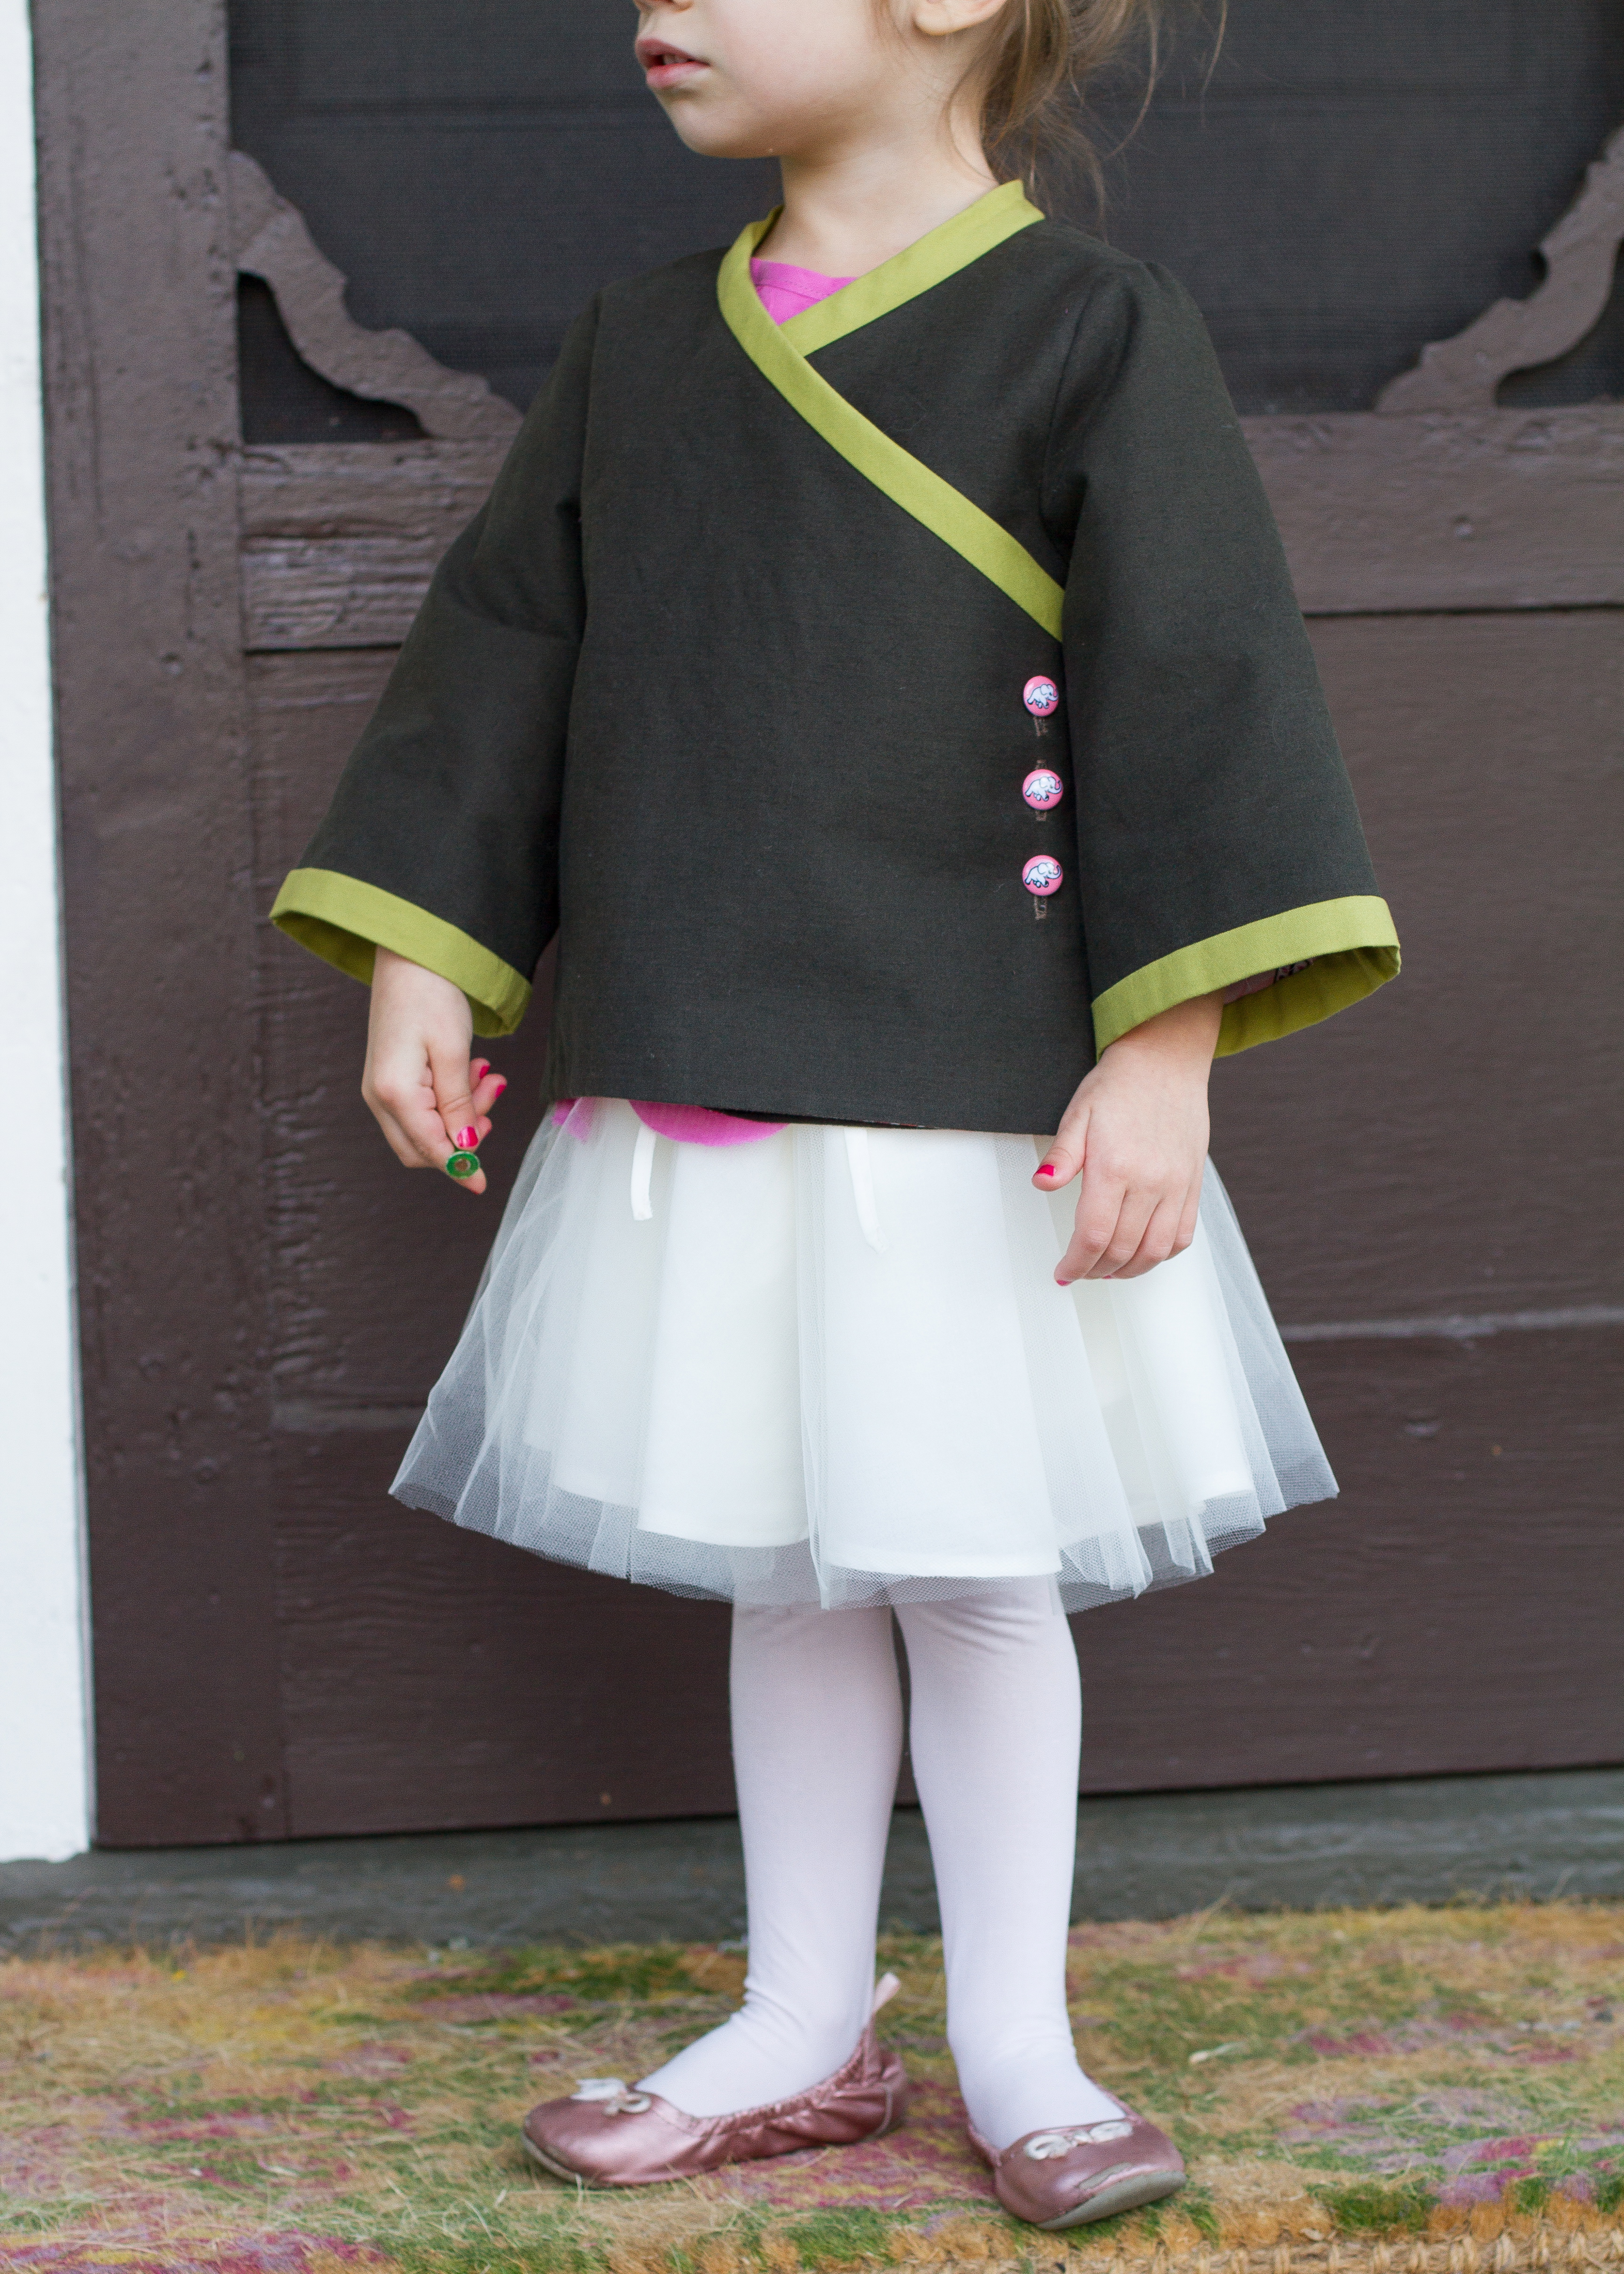 Prp Week 5 Japanese Tea Party Skirt As Top Petal Olive Im Now Calling This Her Ballet Ninja Jacket Other Post Titles I Considered Were For Elephants And Tops